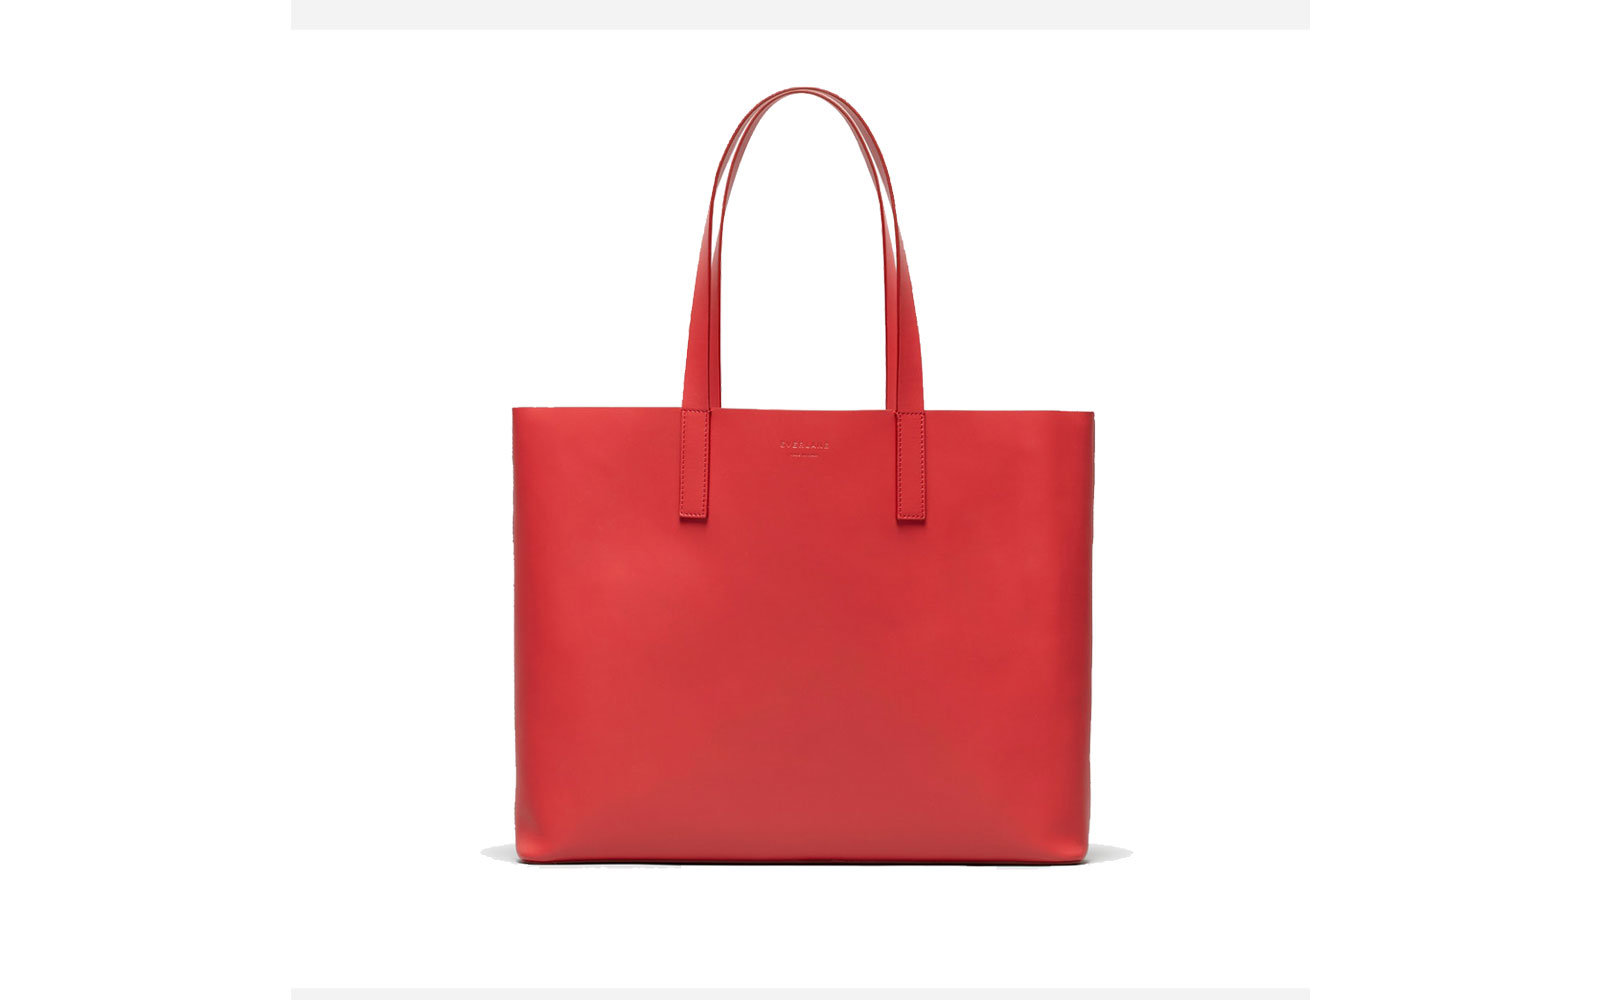 918bab23f2 The Celebrities  Choice  Everlane Day Market Tote